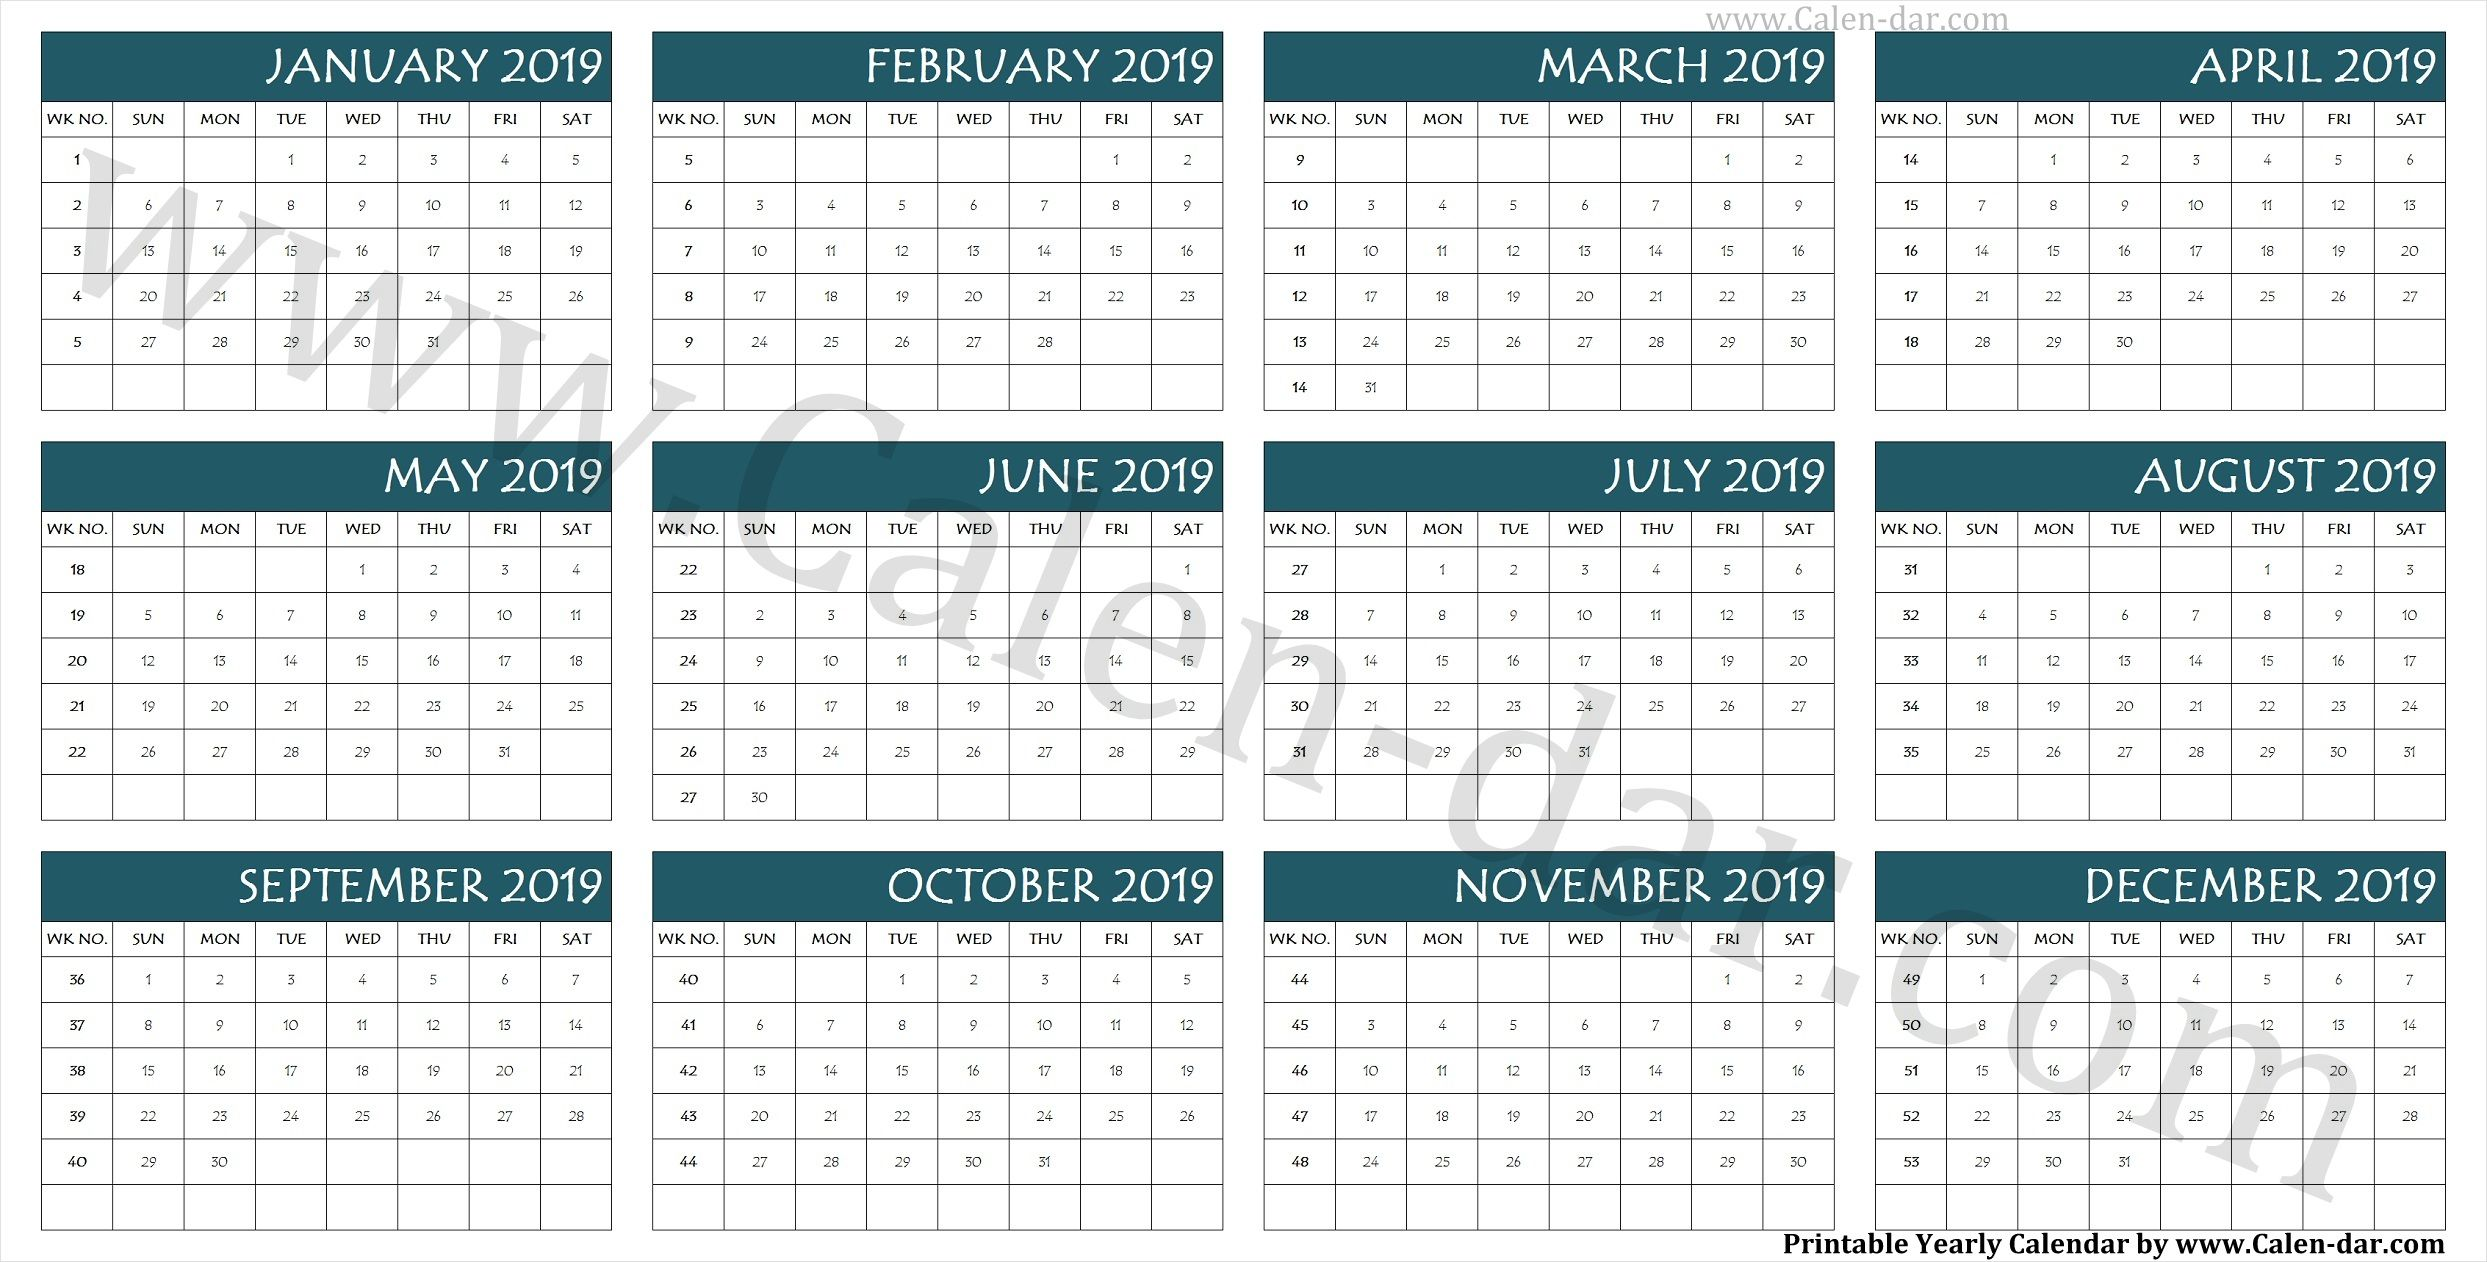 Calendar 2019 Week Wise Printable Template Calendar Printable